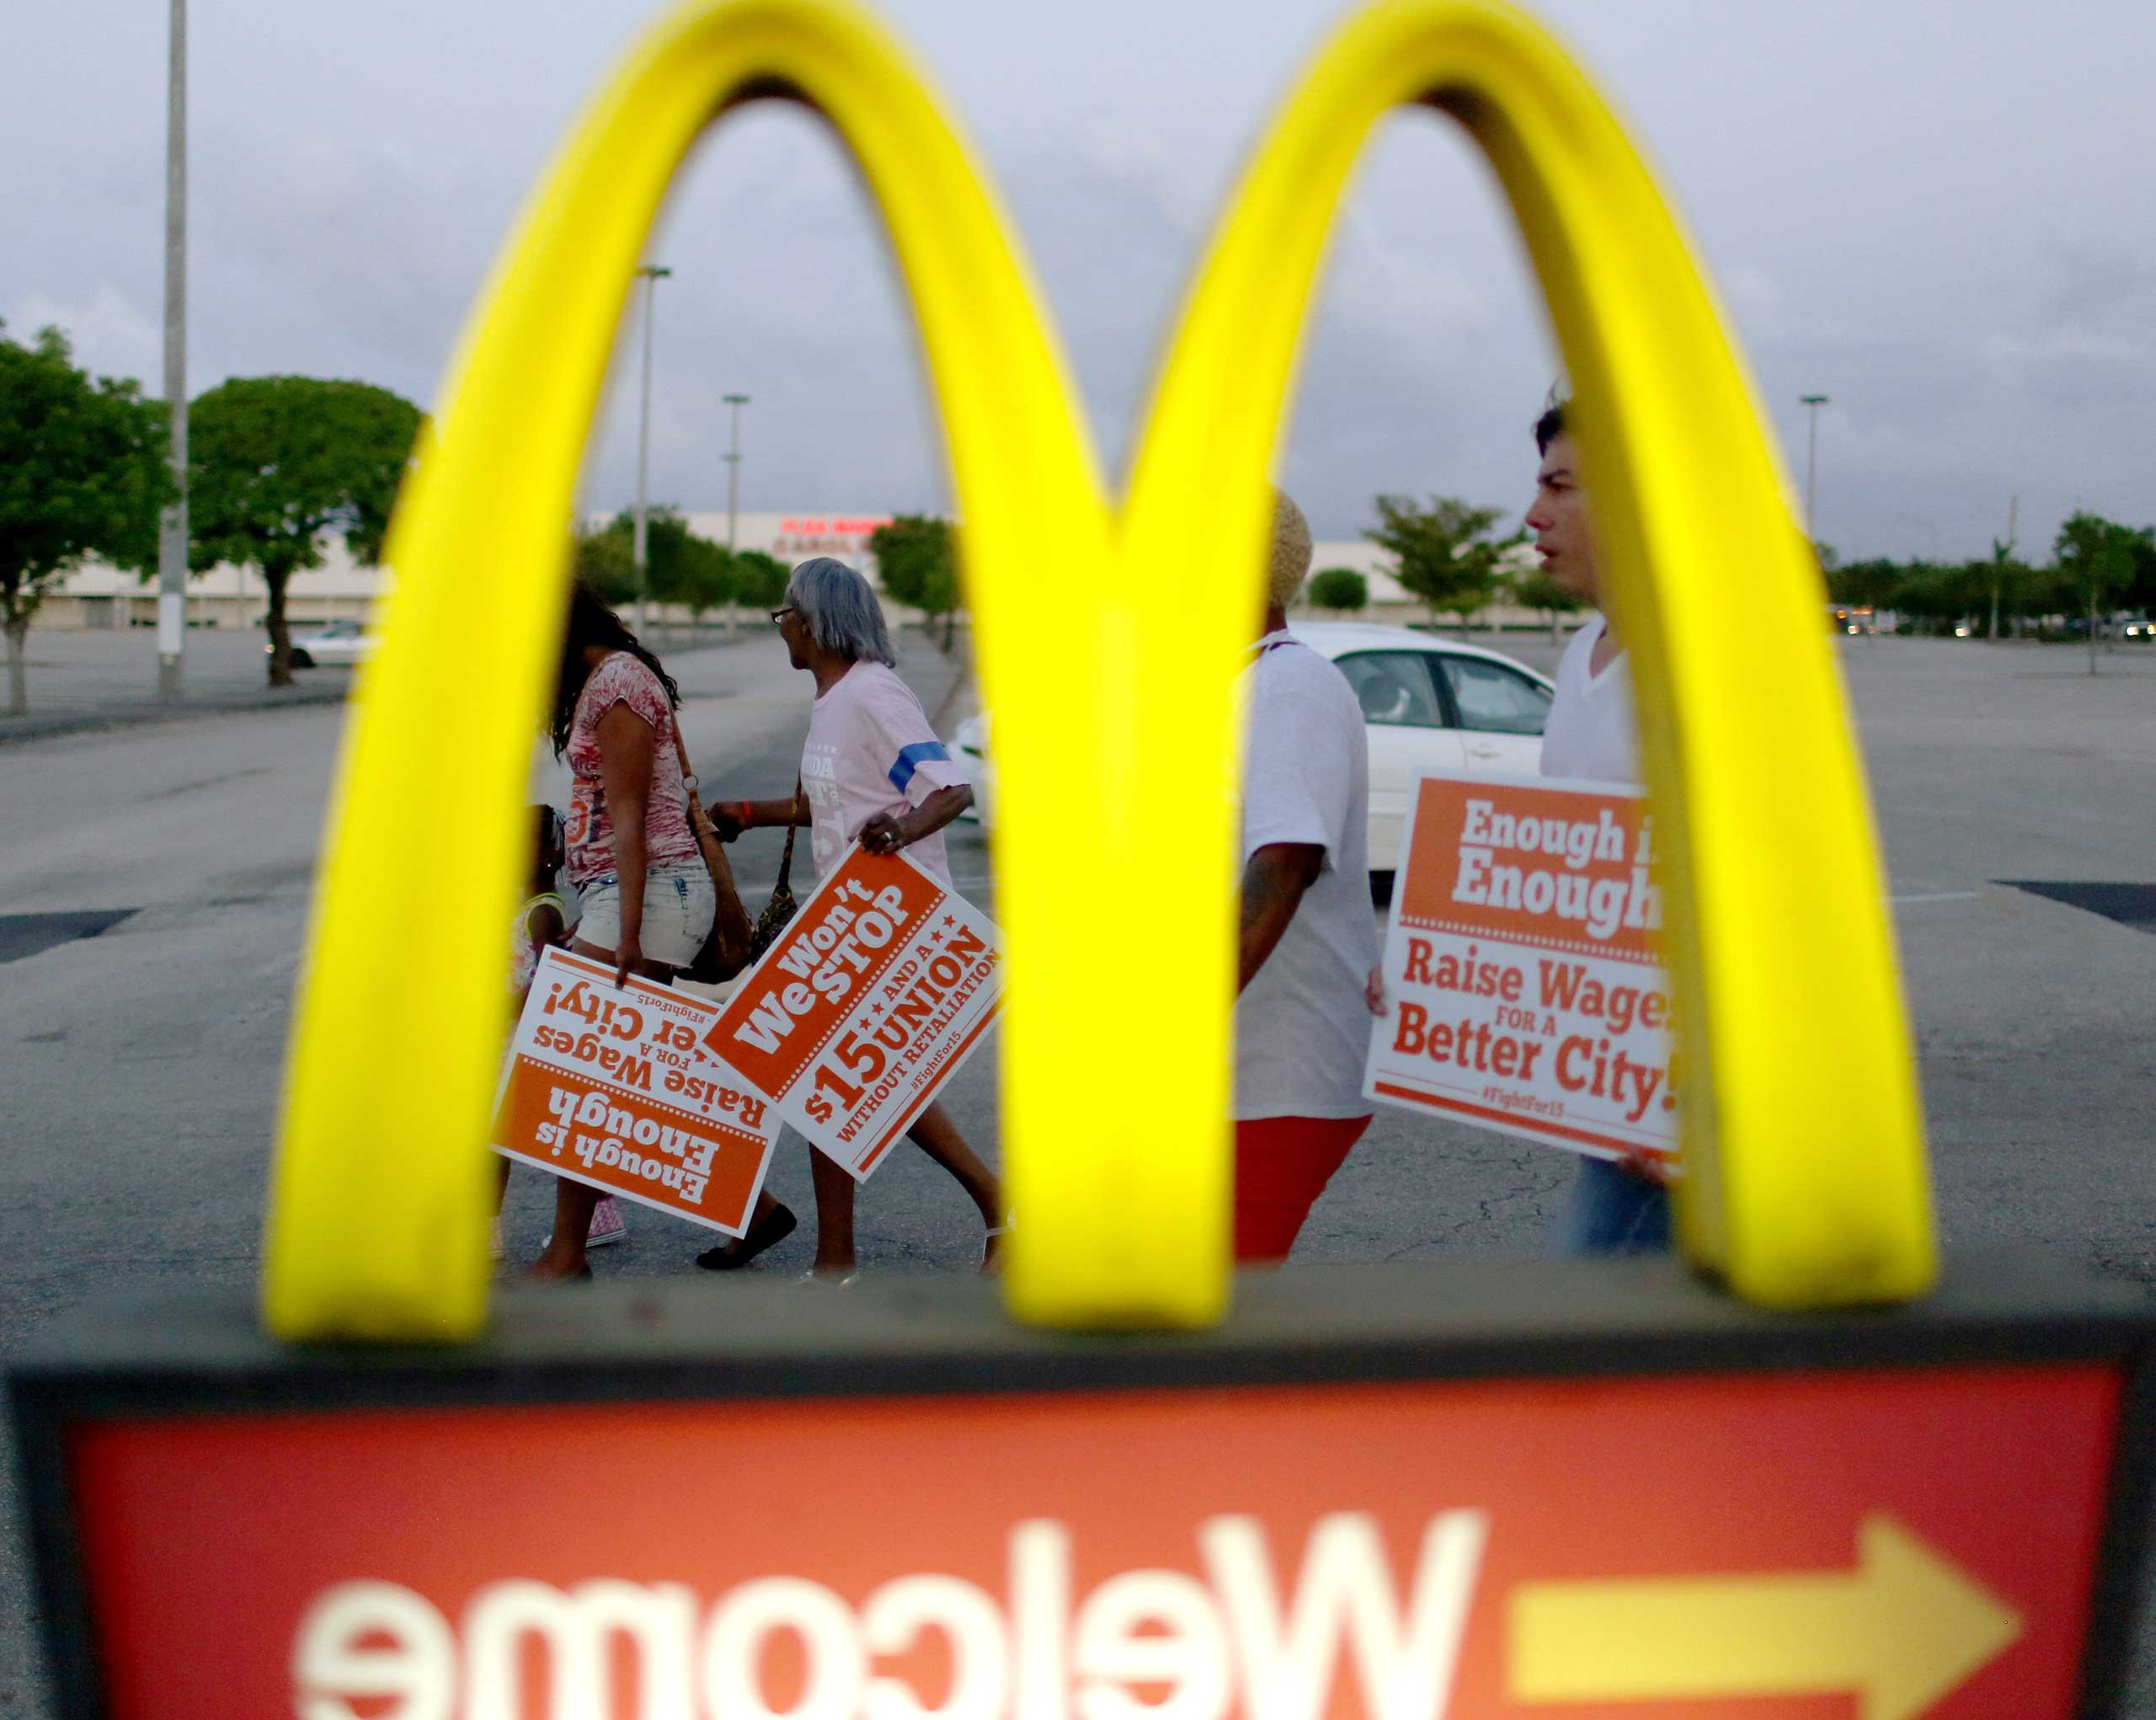 Protesters gather at a McDonald's restaurant on tax day asking for higher wages in Miami Gardens, Fla., on April 15, 2015.